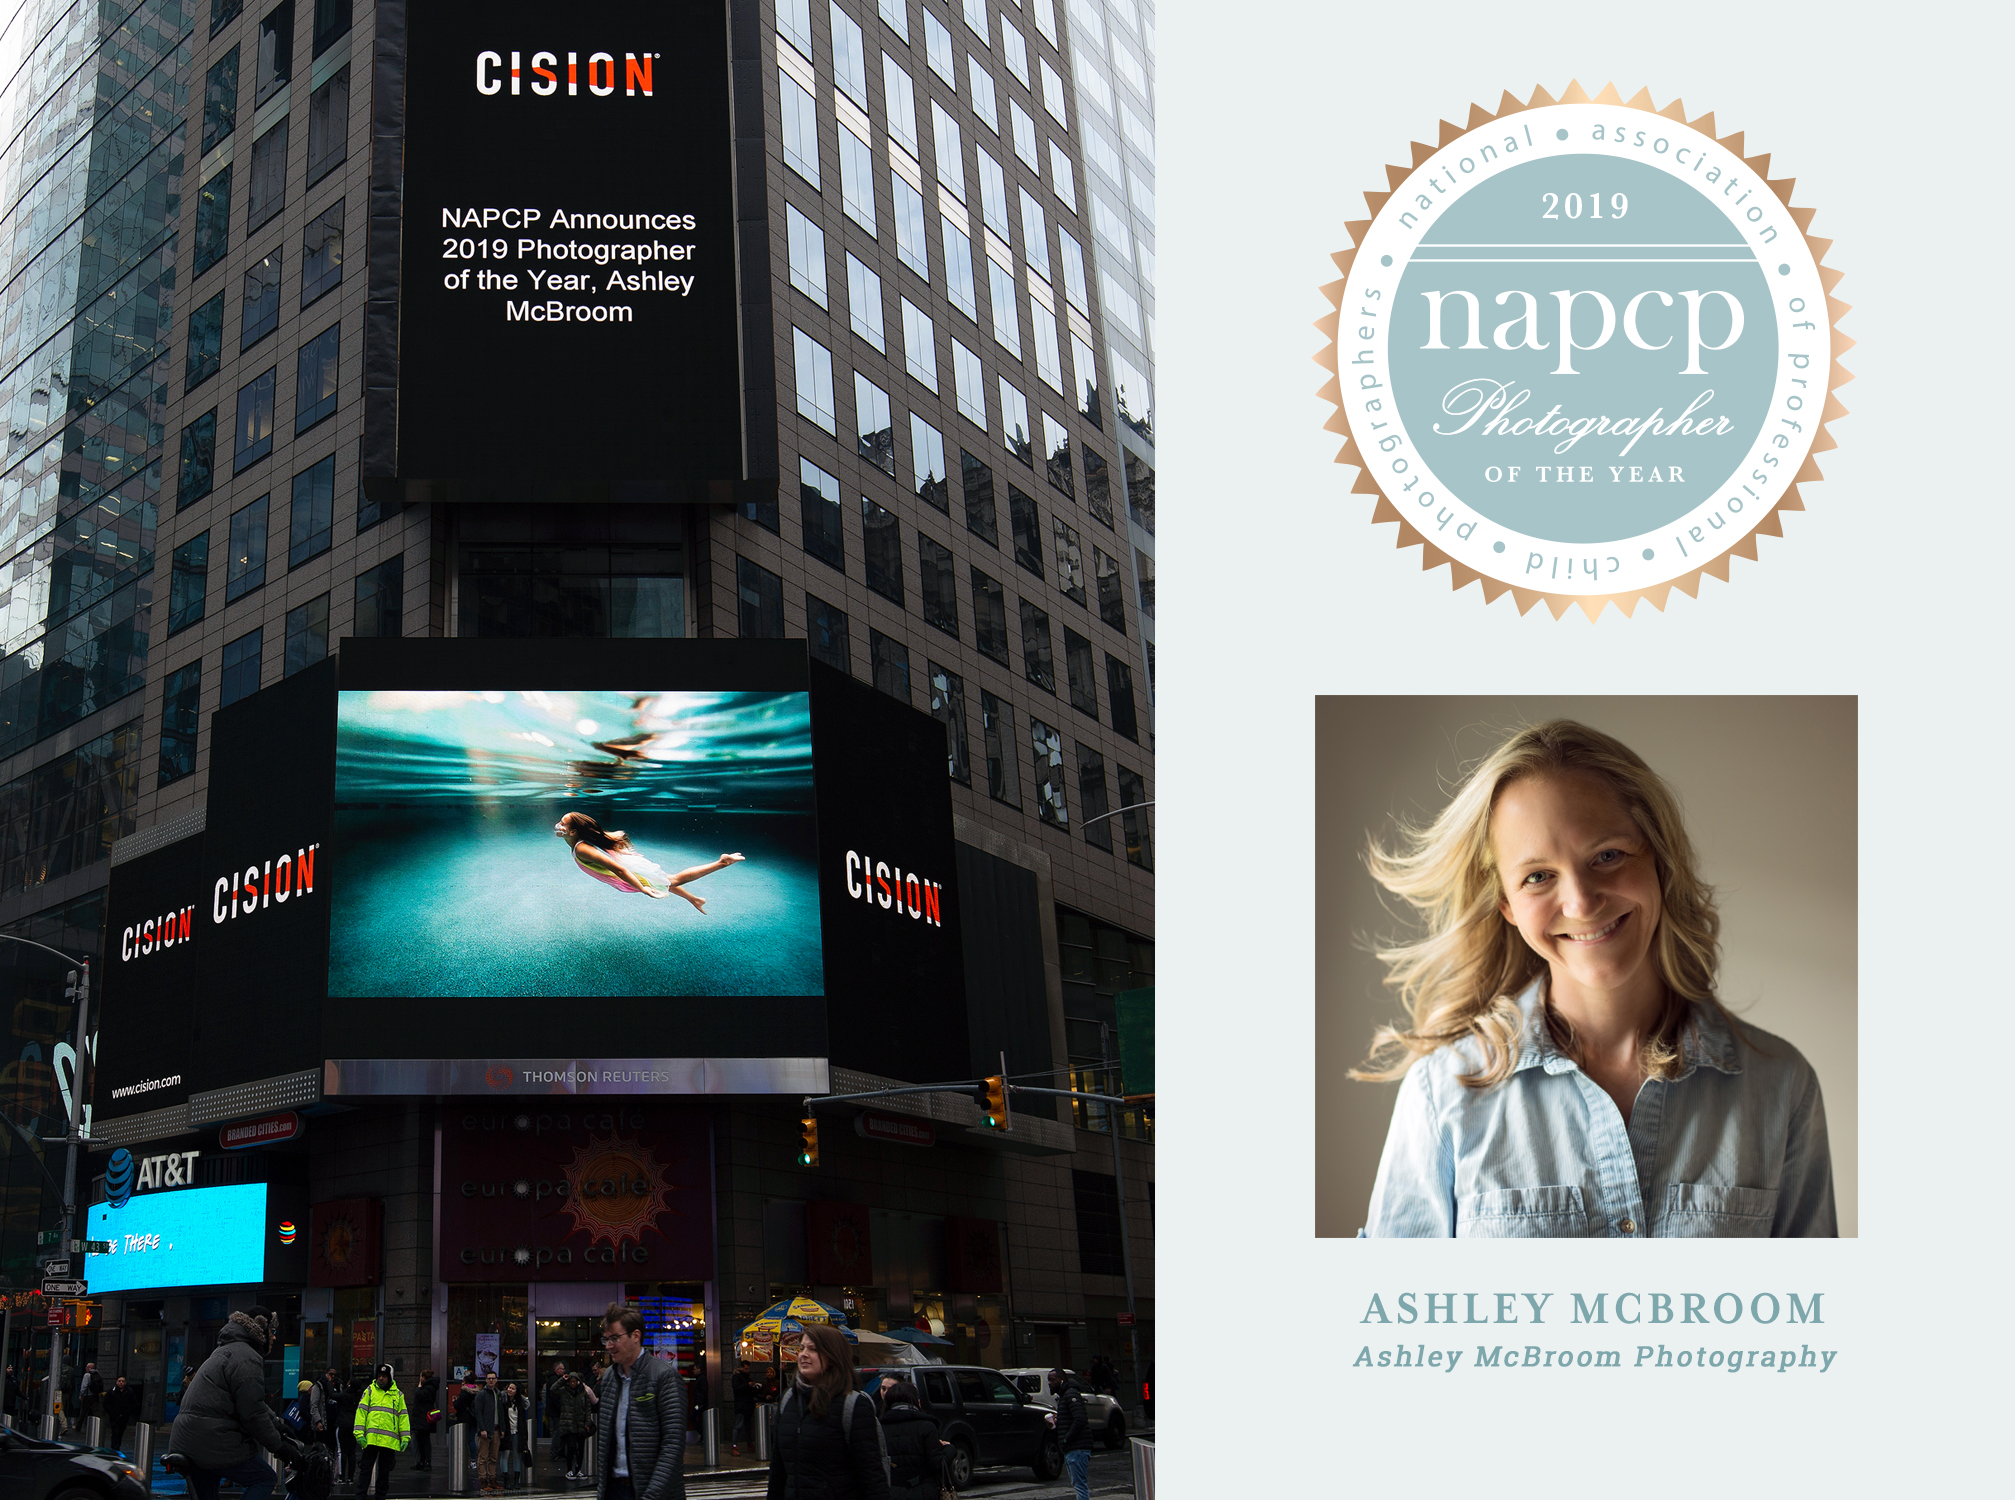 CISION, NAPCP Announces 2019 Photographer of the Year, Ashley McBroom, Ashley McBroom Photography, Times Square billboard, digital billboard, New York City